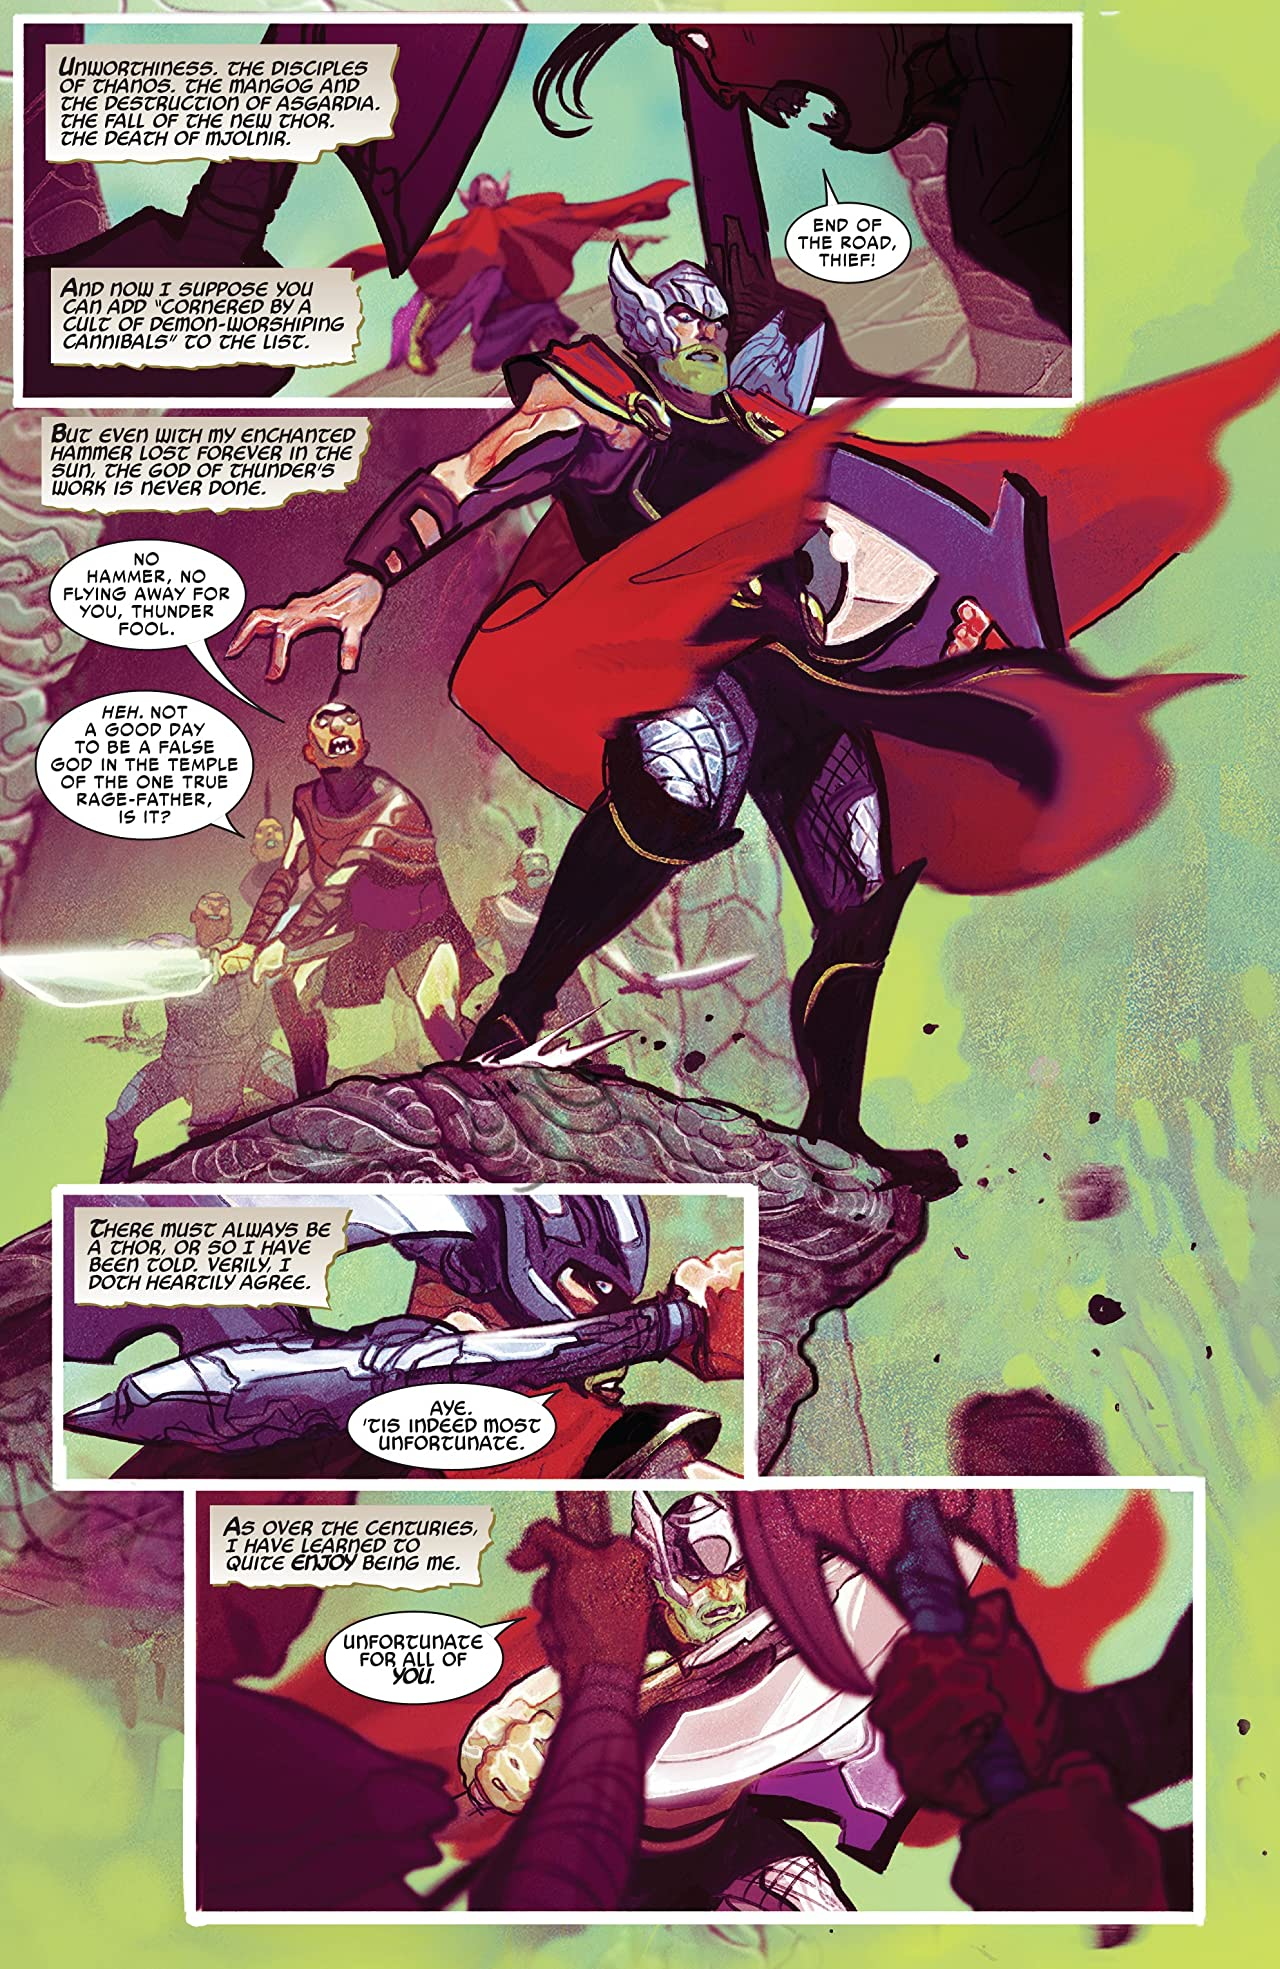 Thor Vol. 1: God Of Thunder Reborn